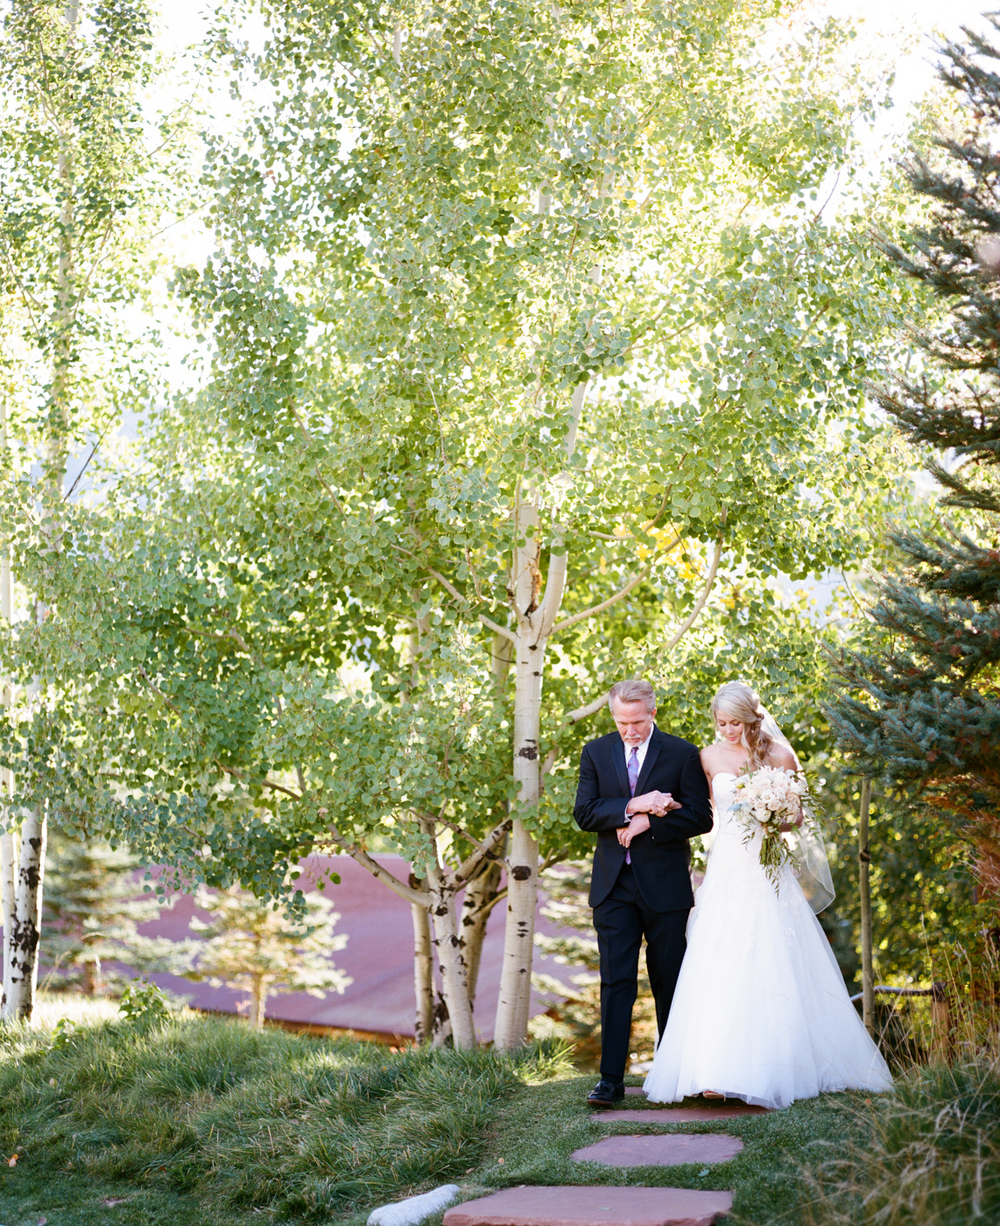 aspen-wedding-photographer-27.jpg